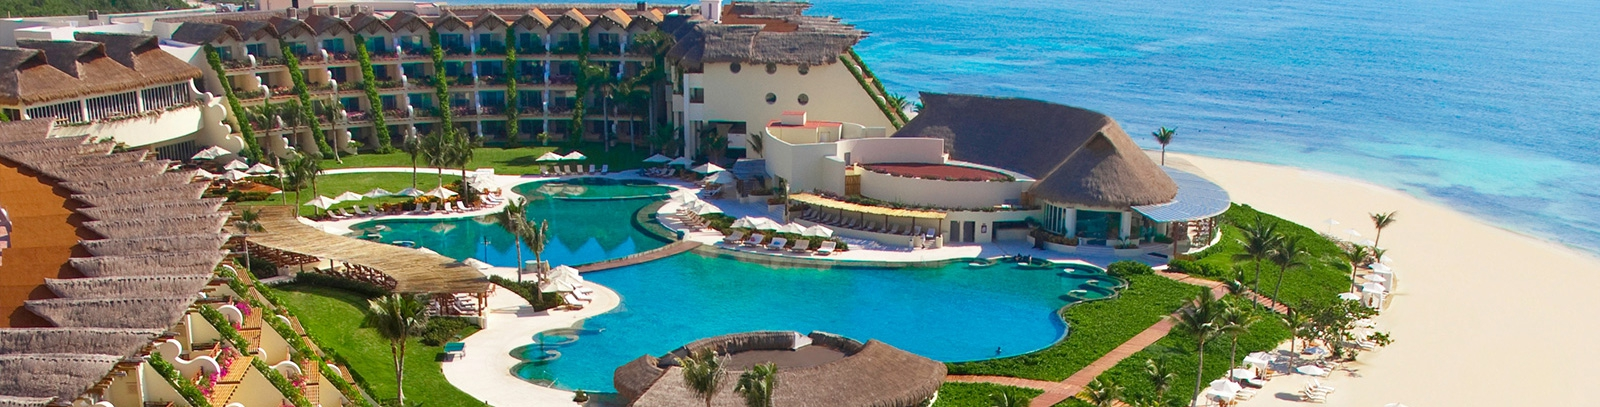 Grand Velas Resort, Riviera Maya honeymoon